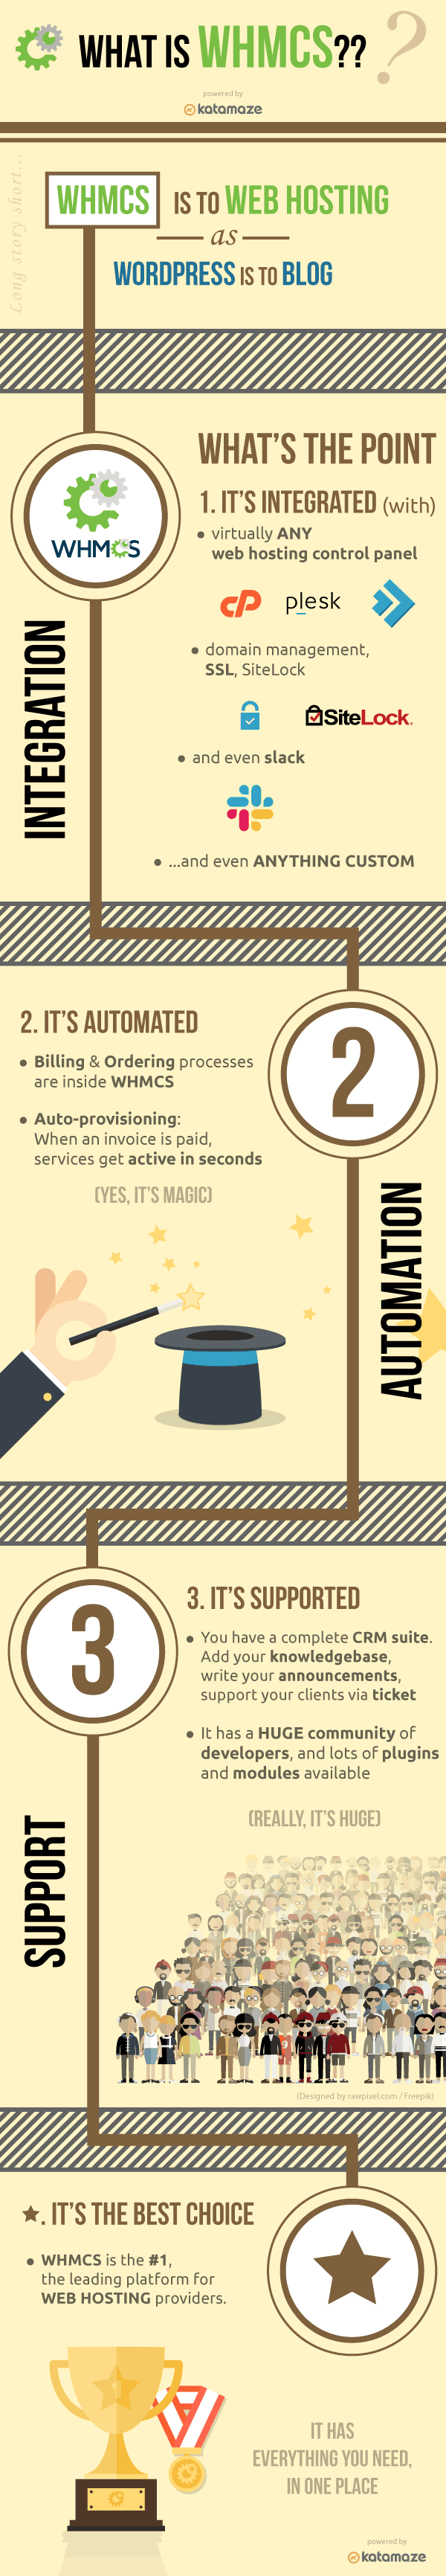 A detailed infographic on what is WHMCS